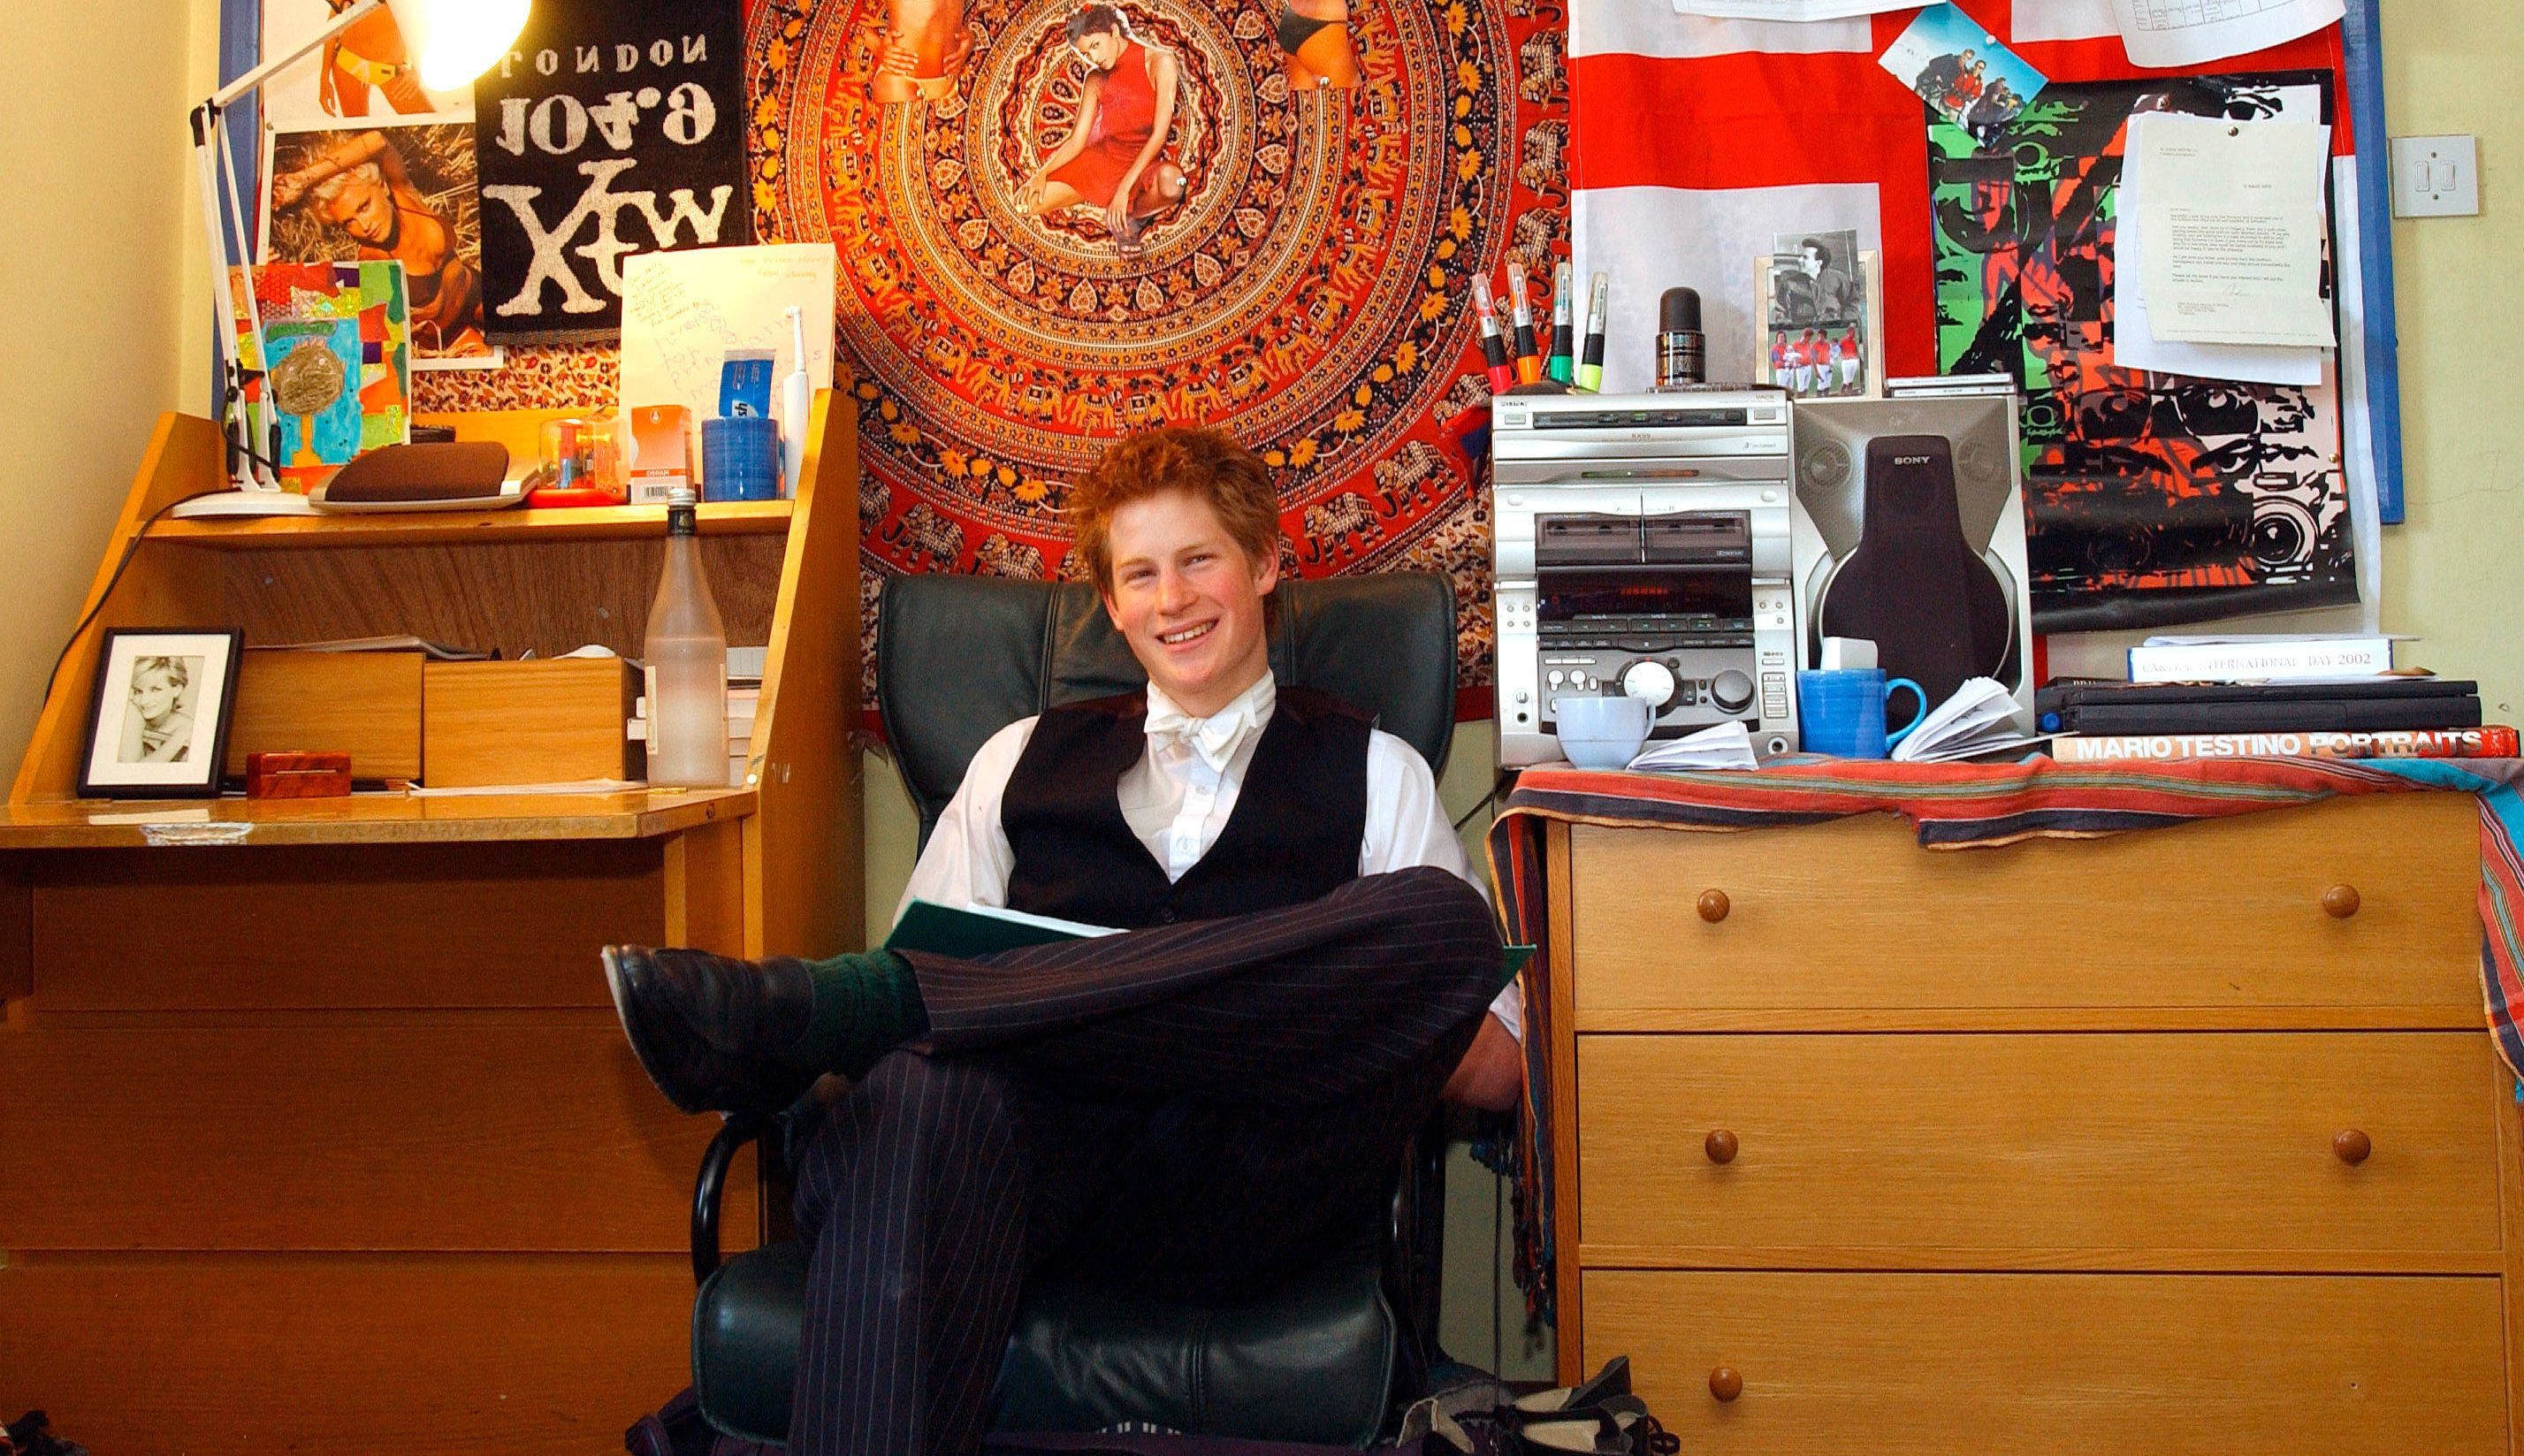 Prince Harry sits in his bedroom at Eton College. (Photo by � Pool Photograph/Corbis/Corbis via Getty Images)